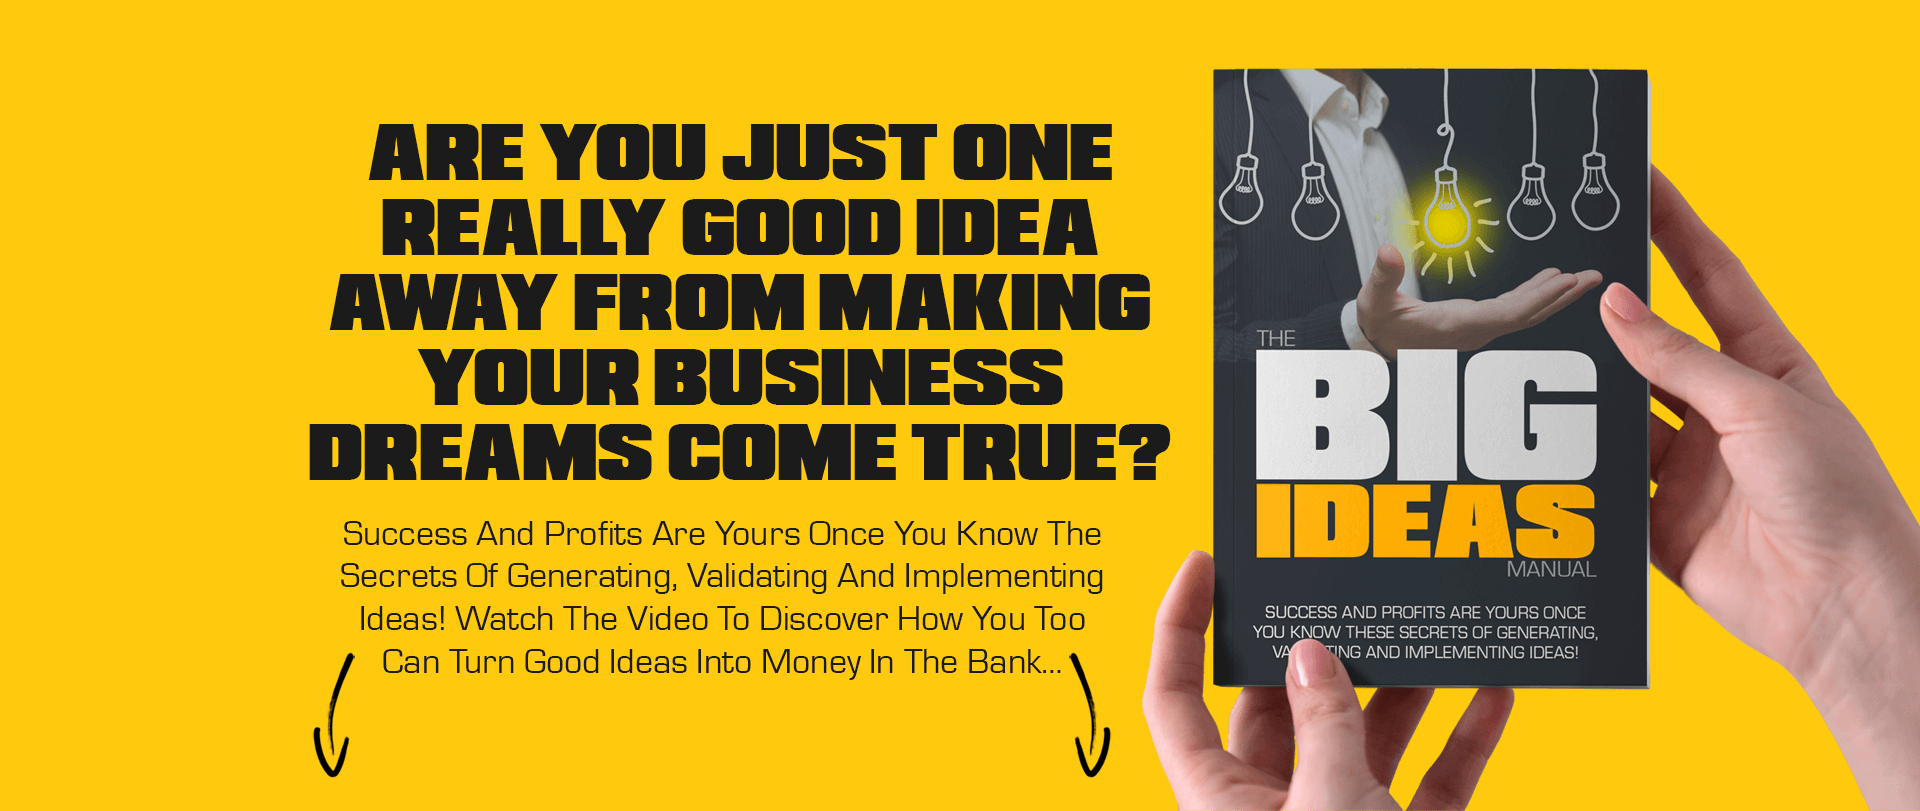 Are You Just One Really Good Idea Away From Making Your Business Dreams Come True?